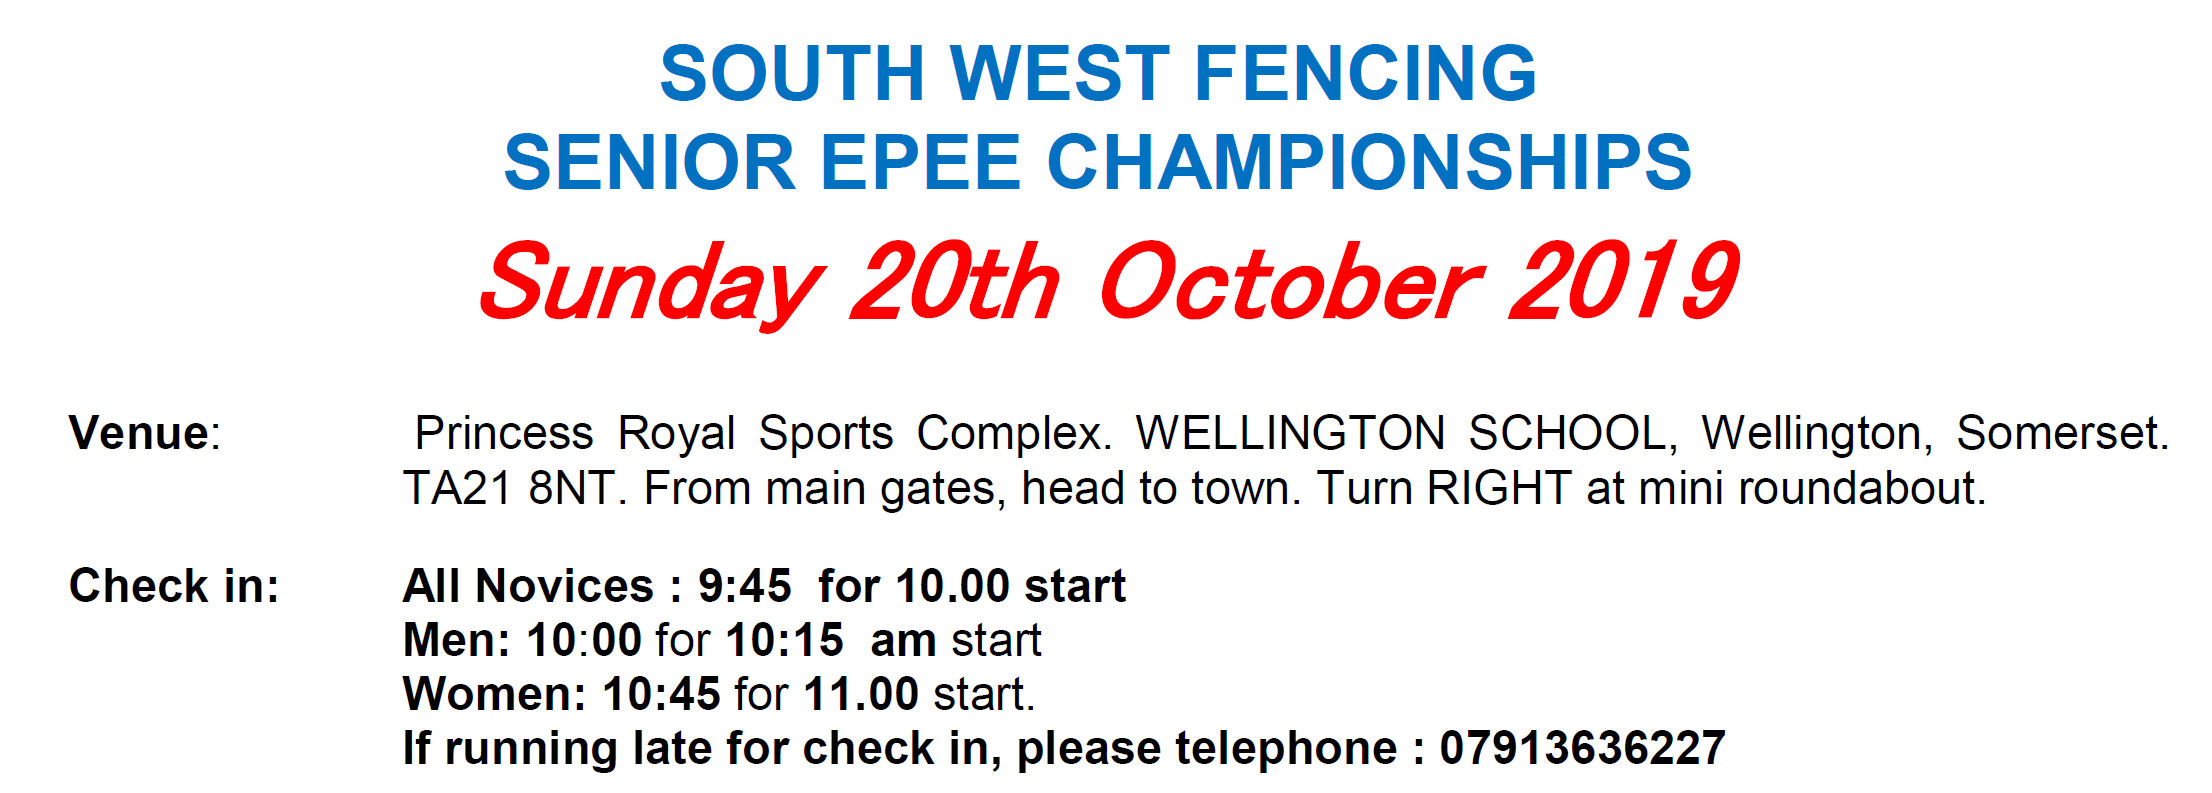 South West Senior Epee 2019